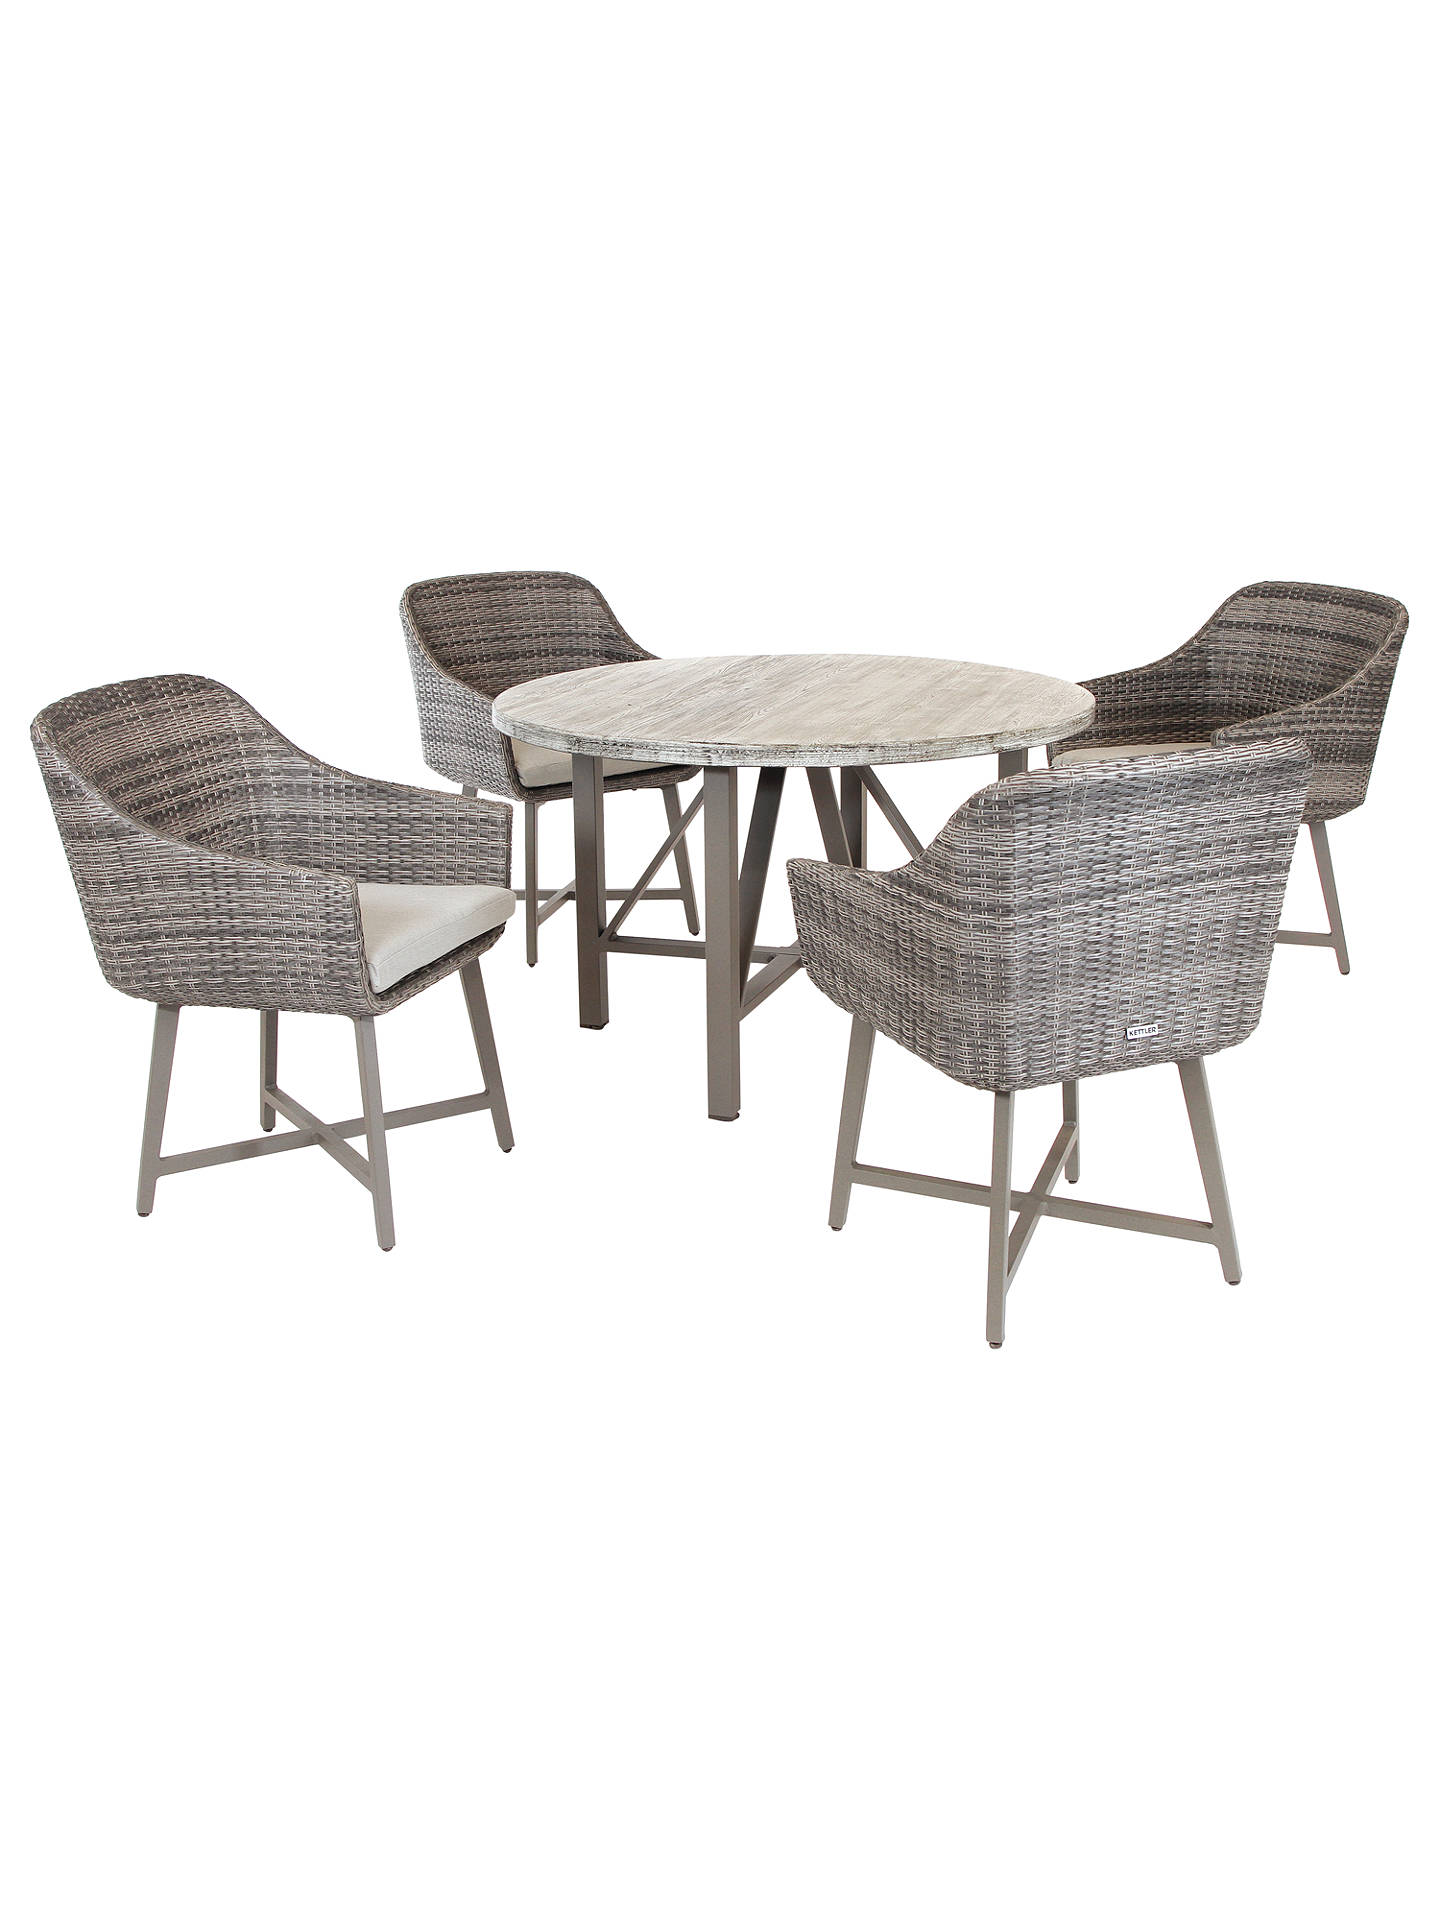 b652e2cd09fd Buy KETTLER LaMode 4 Seater Garden Dining Table and Chairs Set, Olive Grey  Online at ...